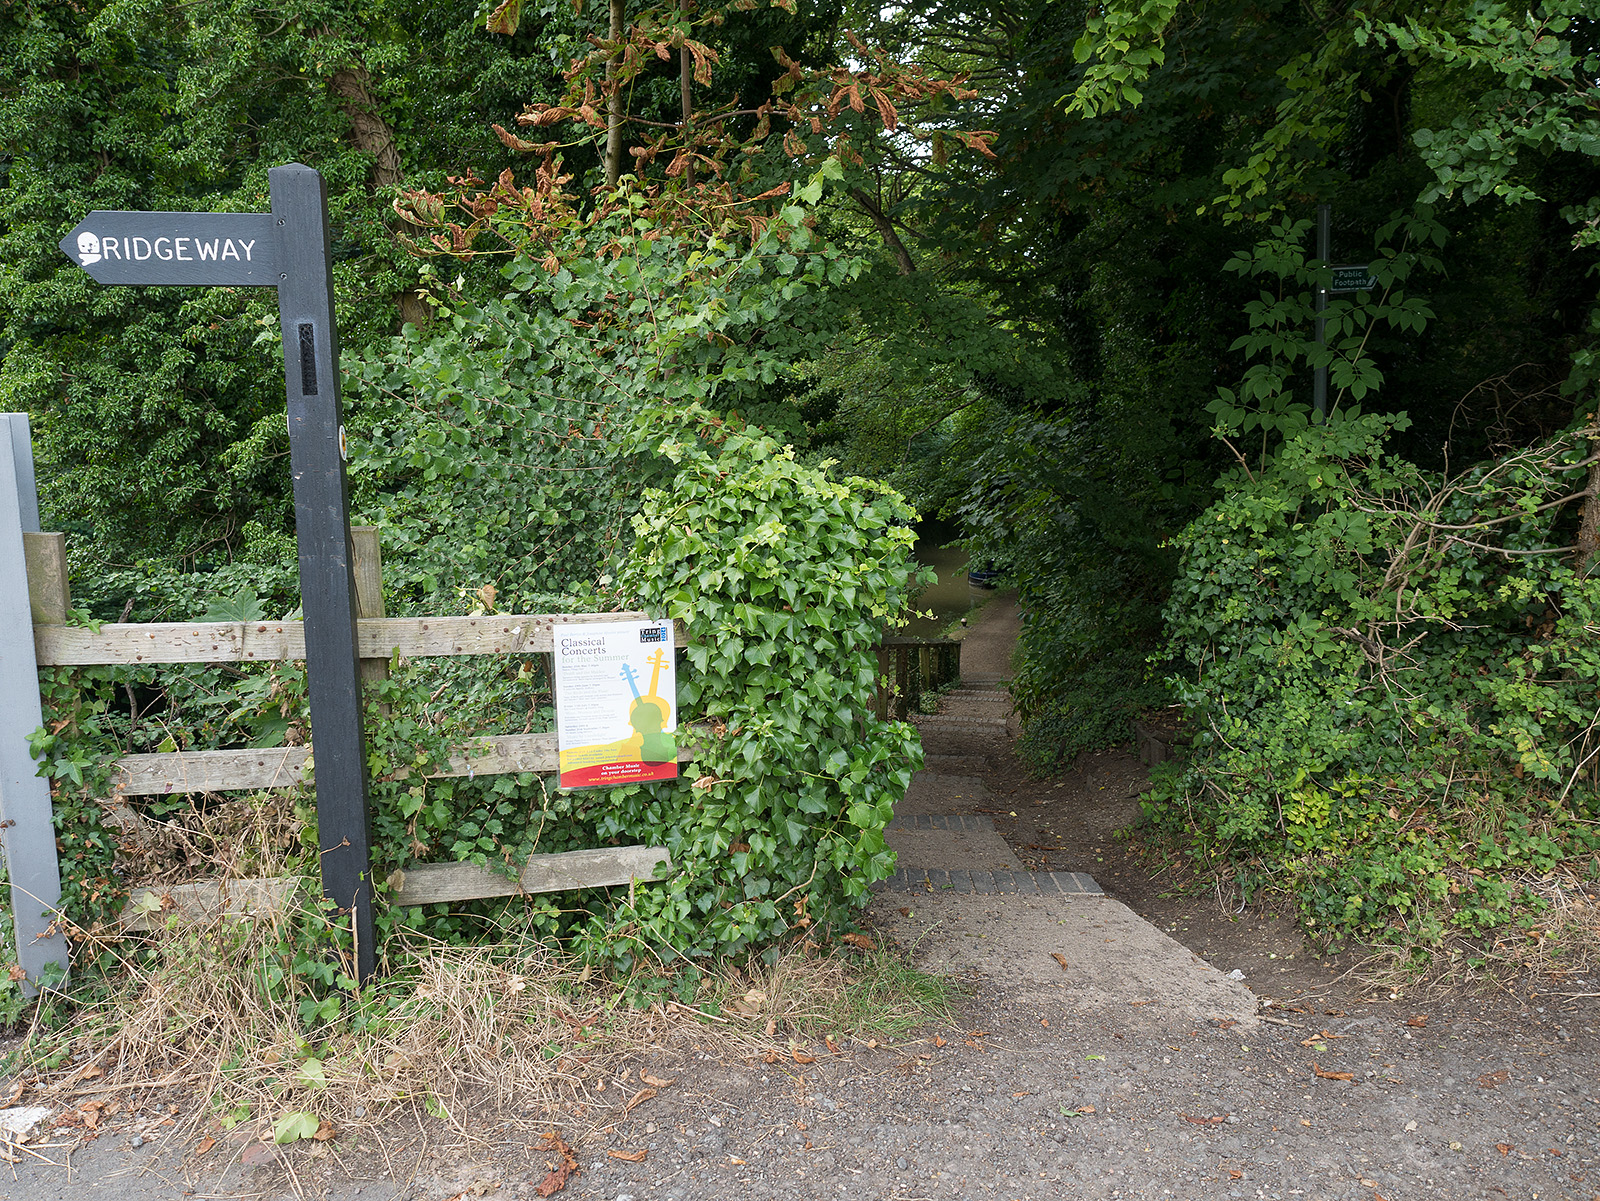 Footpath down to the canal at Tring